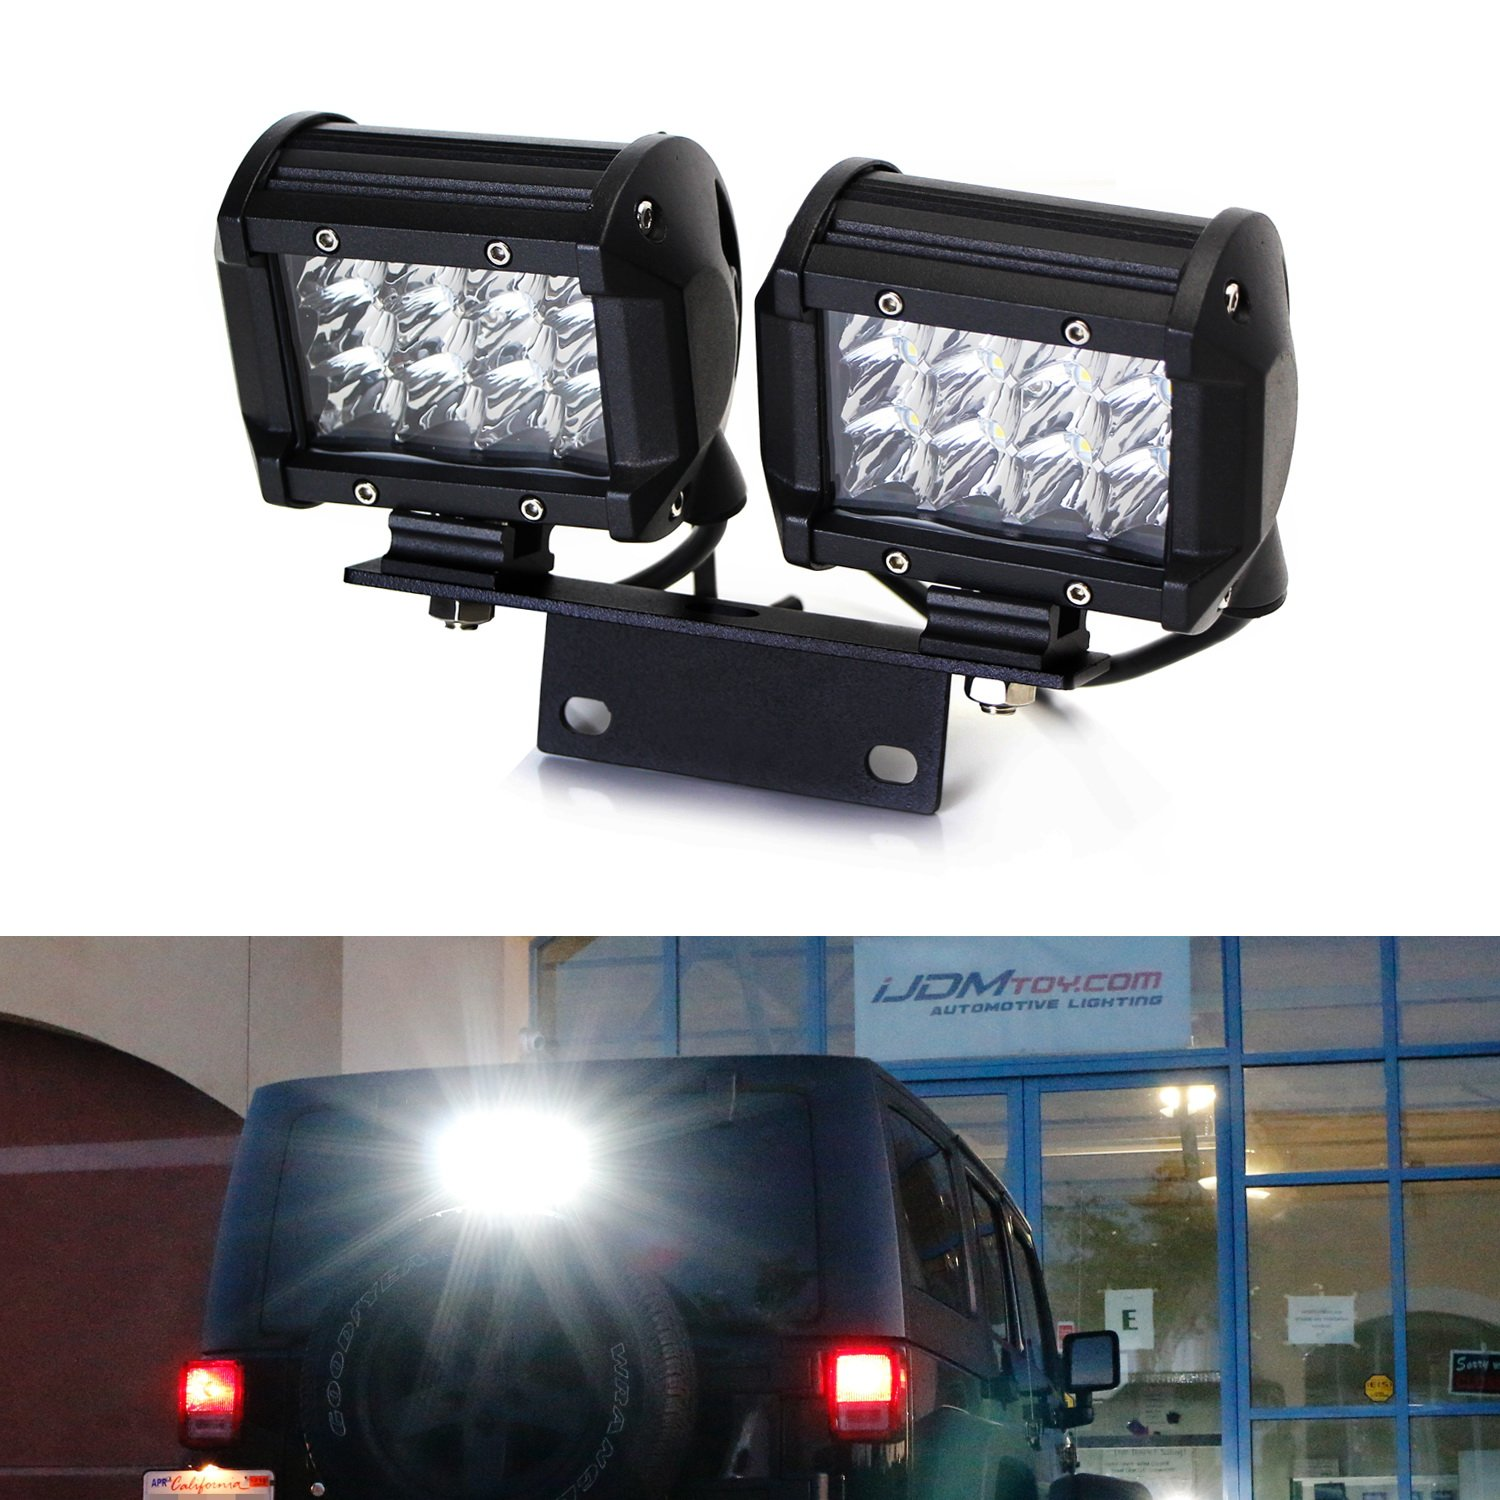 for 2007-17 jeep wrangler jk, includes (2) 36w led pod lamps, brake  lamp mount bracket & relay wiring switch as driving/search, reverse backup  lights